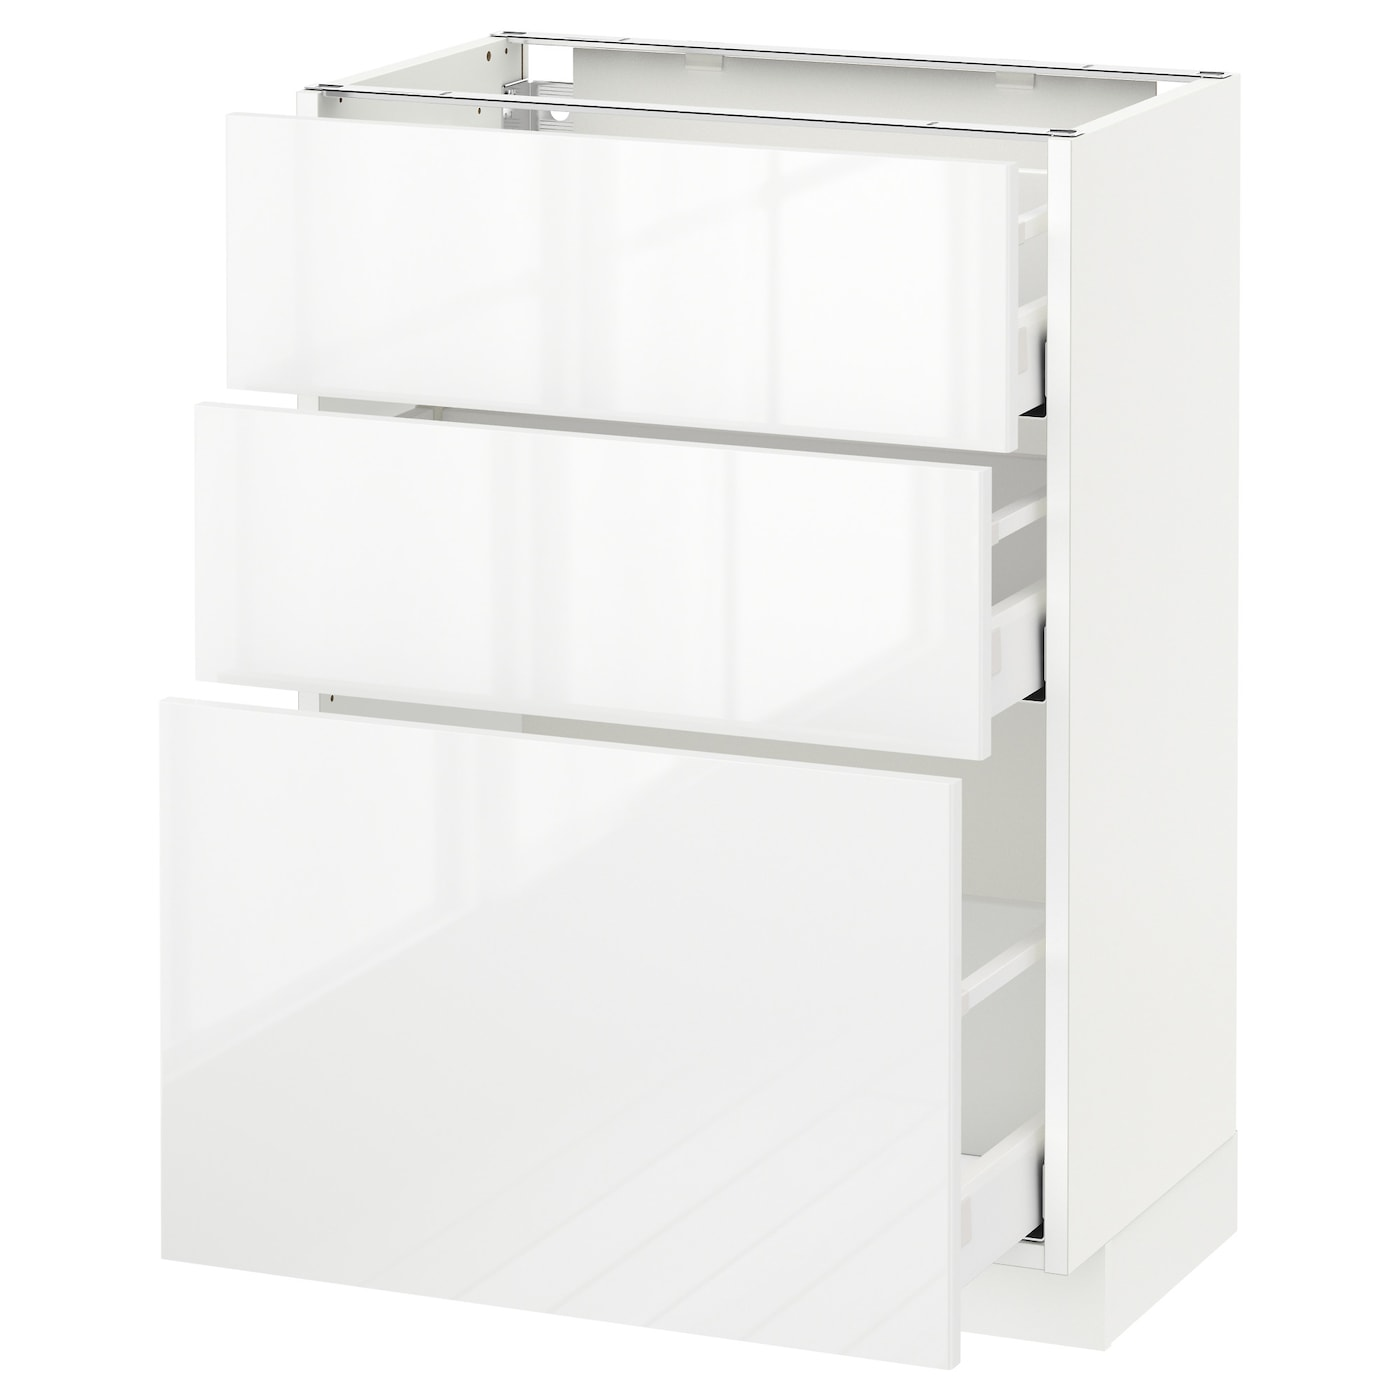 metod maximera l ment bas 3 tiroirs blanc ringhult blanc 60x37 cm ikea. Black Bedroom Furniture Sets. Home Design Ideas